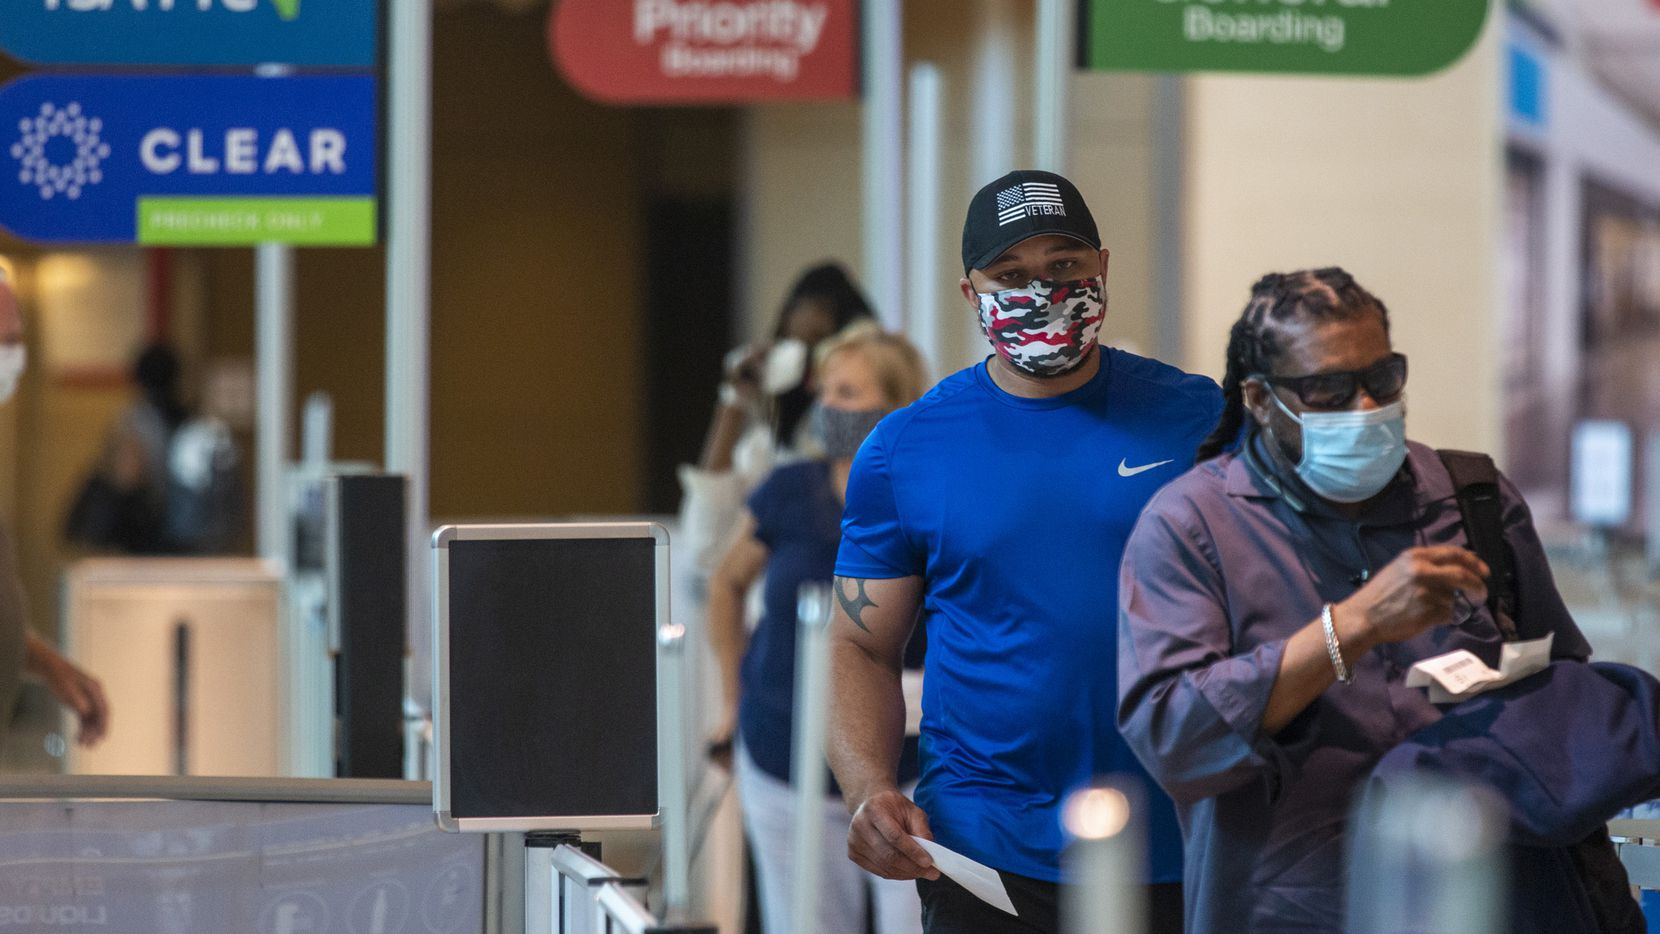 Masked passengers walk to the security checkpoint at Dallas Love Field airport in Dallas on Sunday, July 26, 2020. (Lynda M. Gonzalez/The Dallas Morning News)